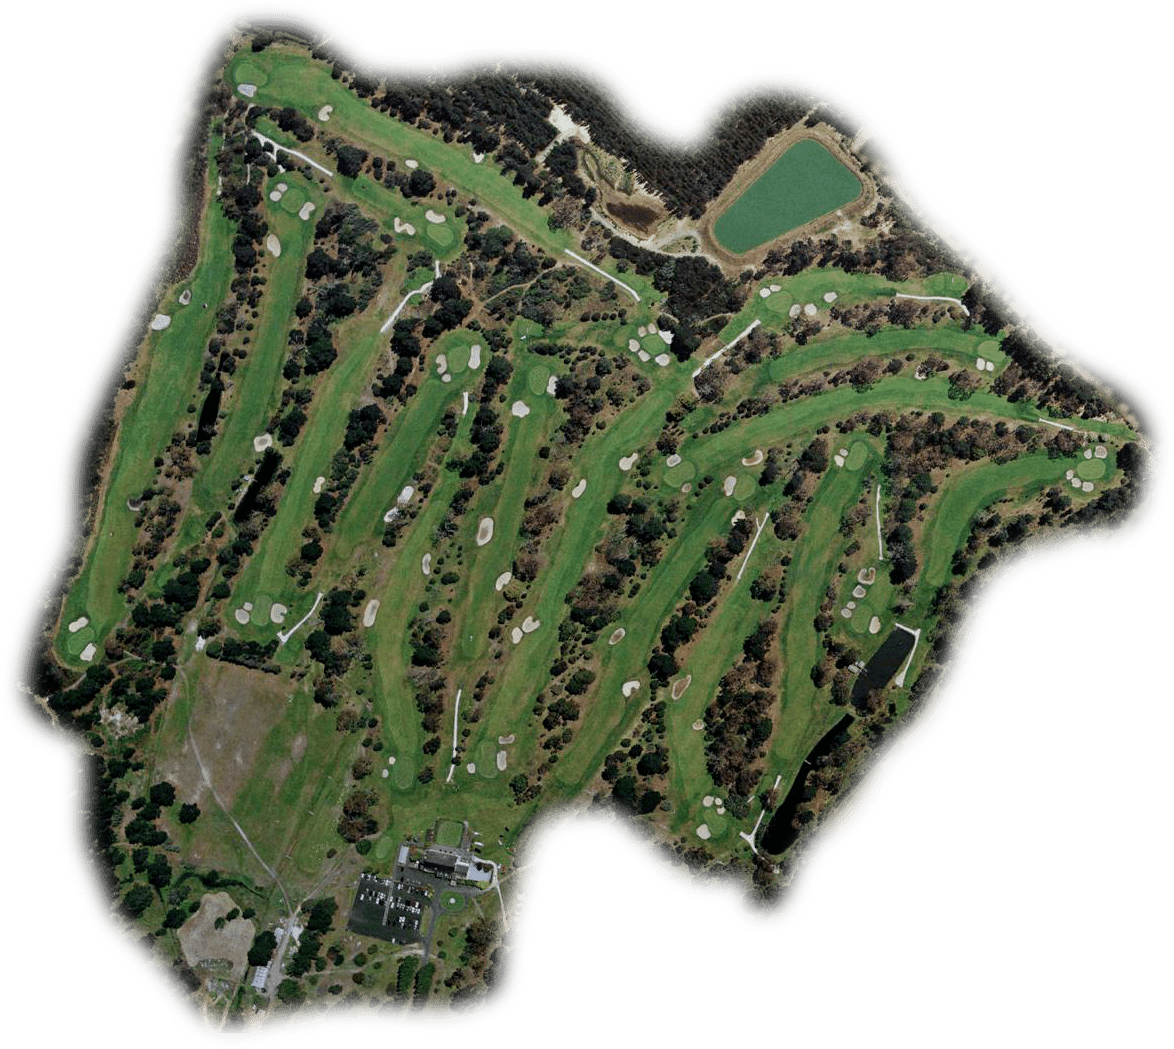 Royal Hobart Golf Club overview